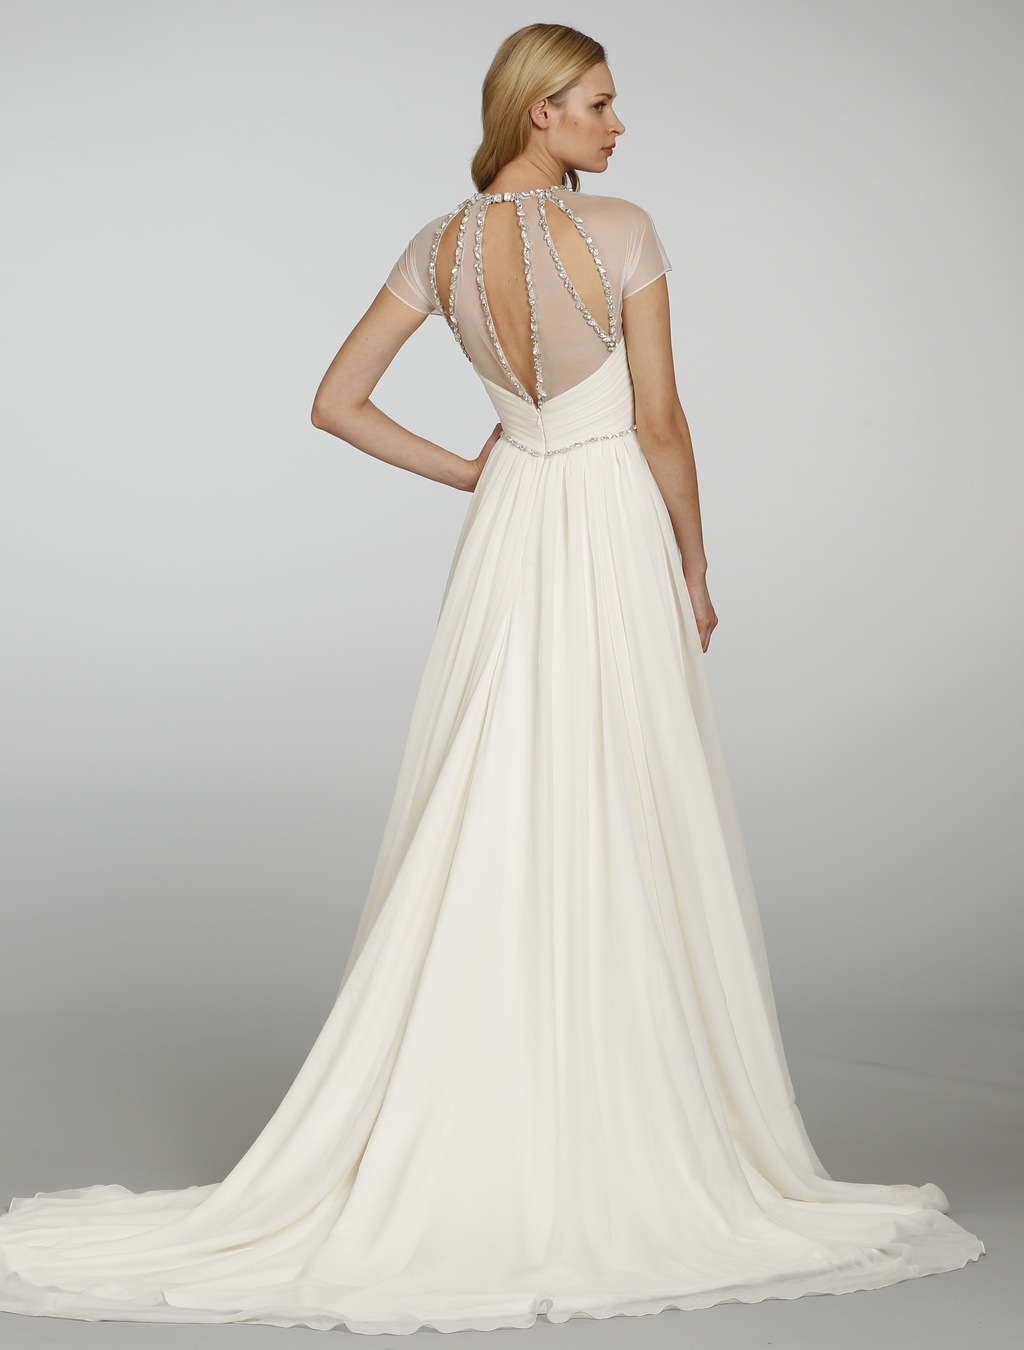 Spring 2013 wedding dress hayley paige bridal gowns 6300 b for Hayley paige wedding dress